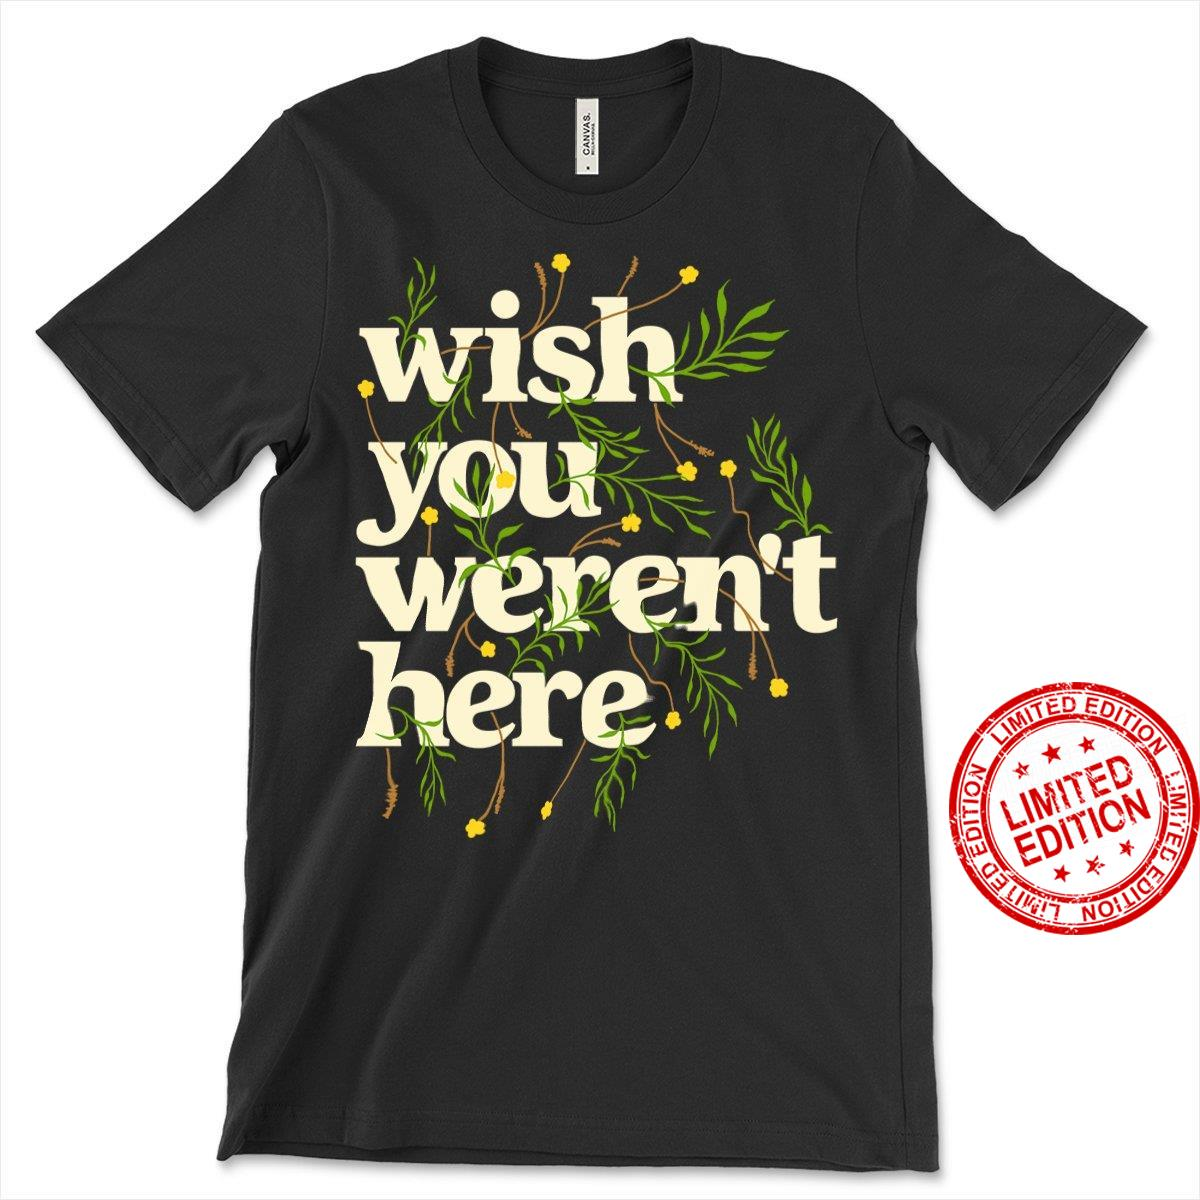 Wish You Weren't Here Shirt